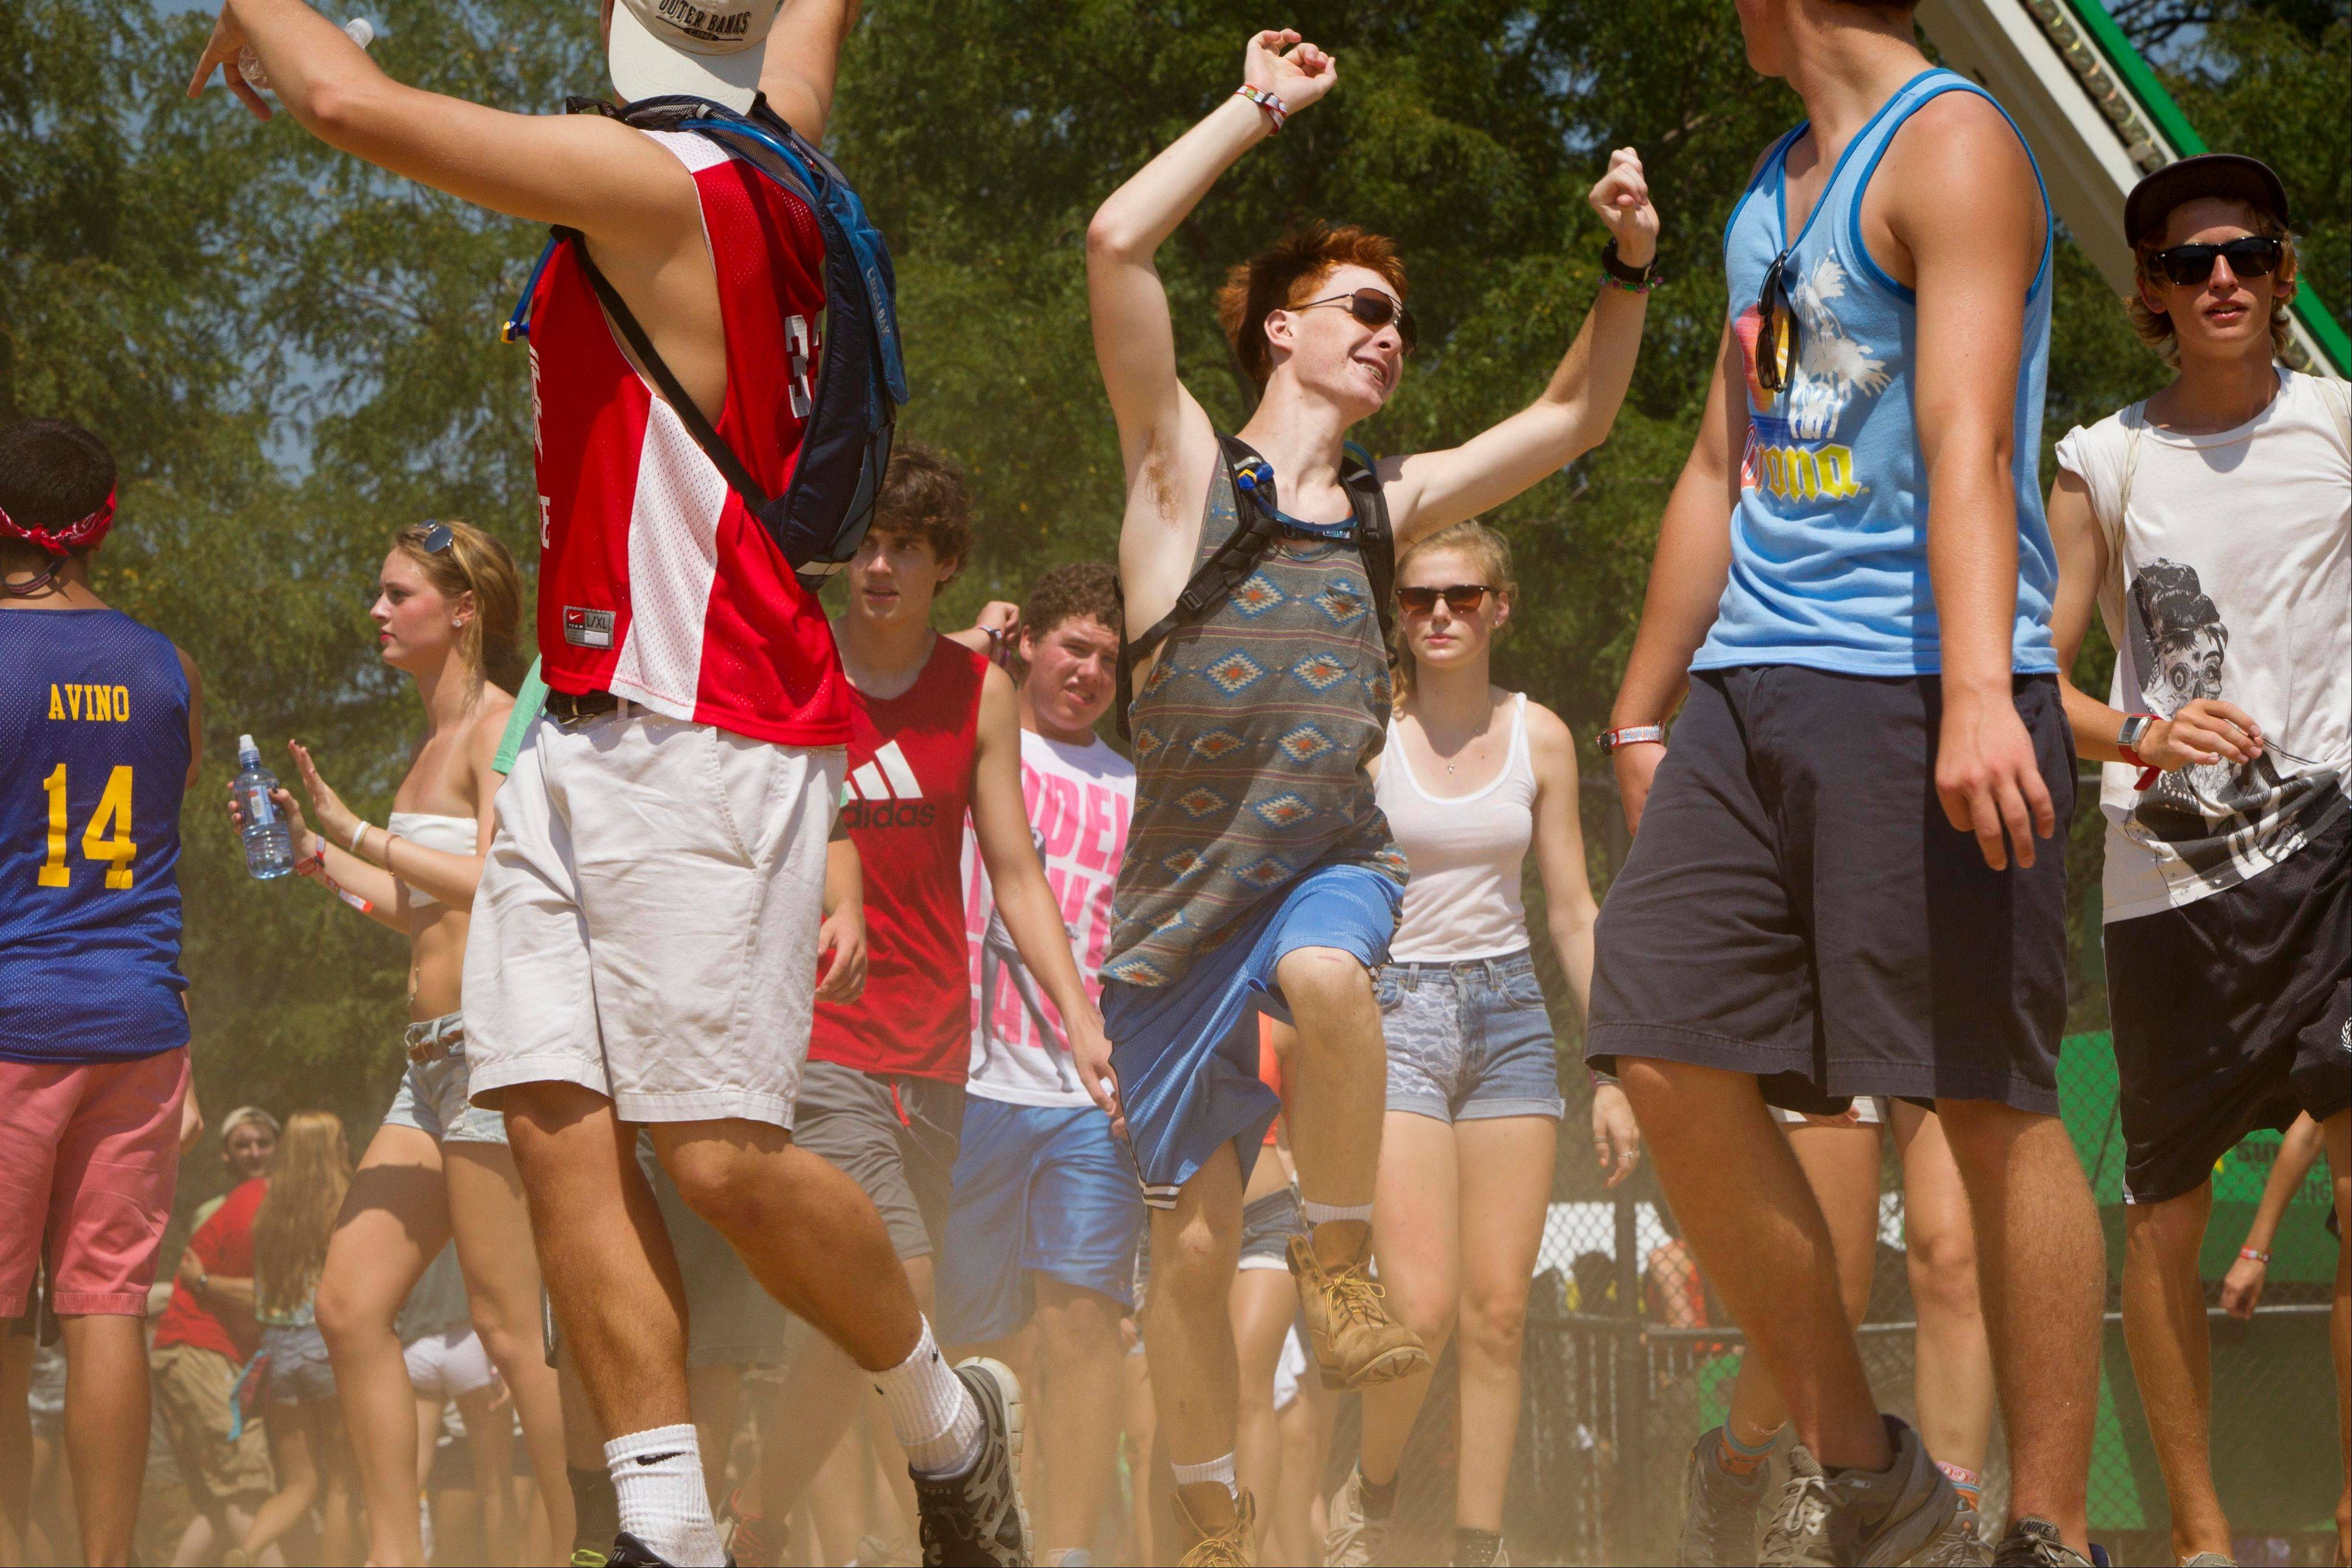 Fans dance their way between stages at Lollapalooza in Chicago's Grant Park on Friday, Aug. 3, 2012.